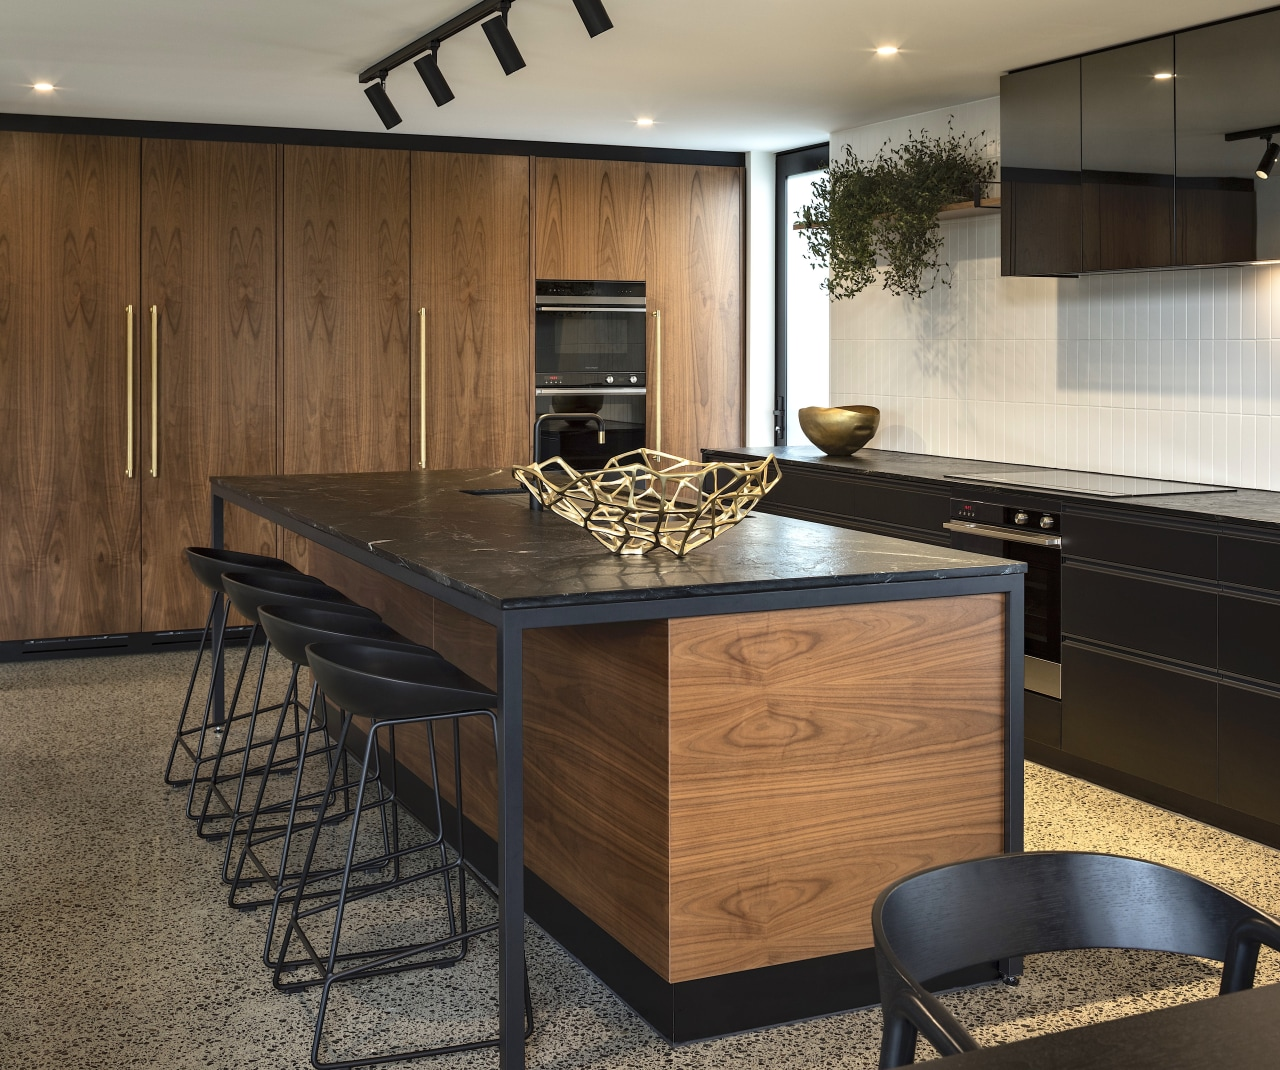 American walnut veneer meets hard-wearing Meltica surfaces in